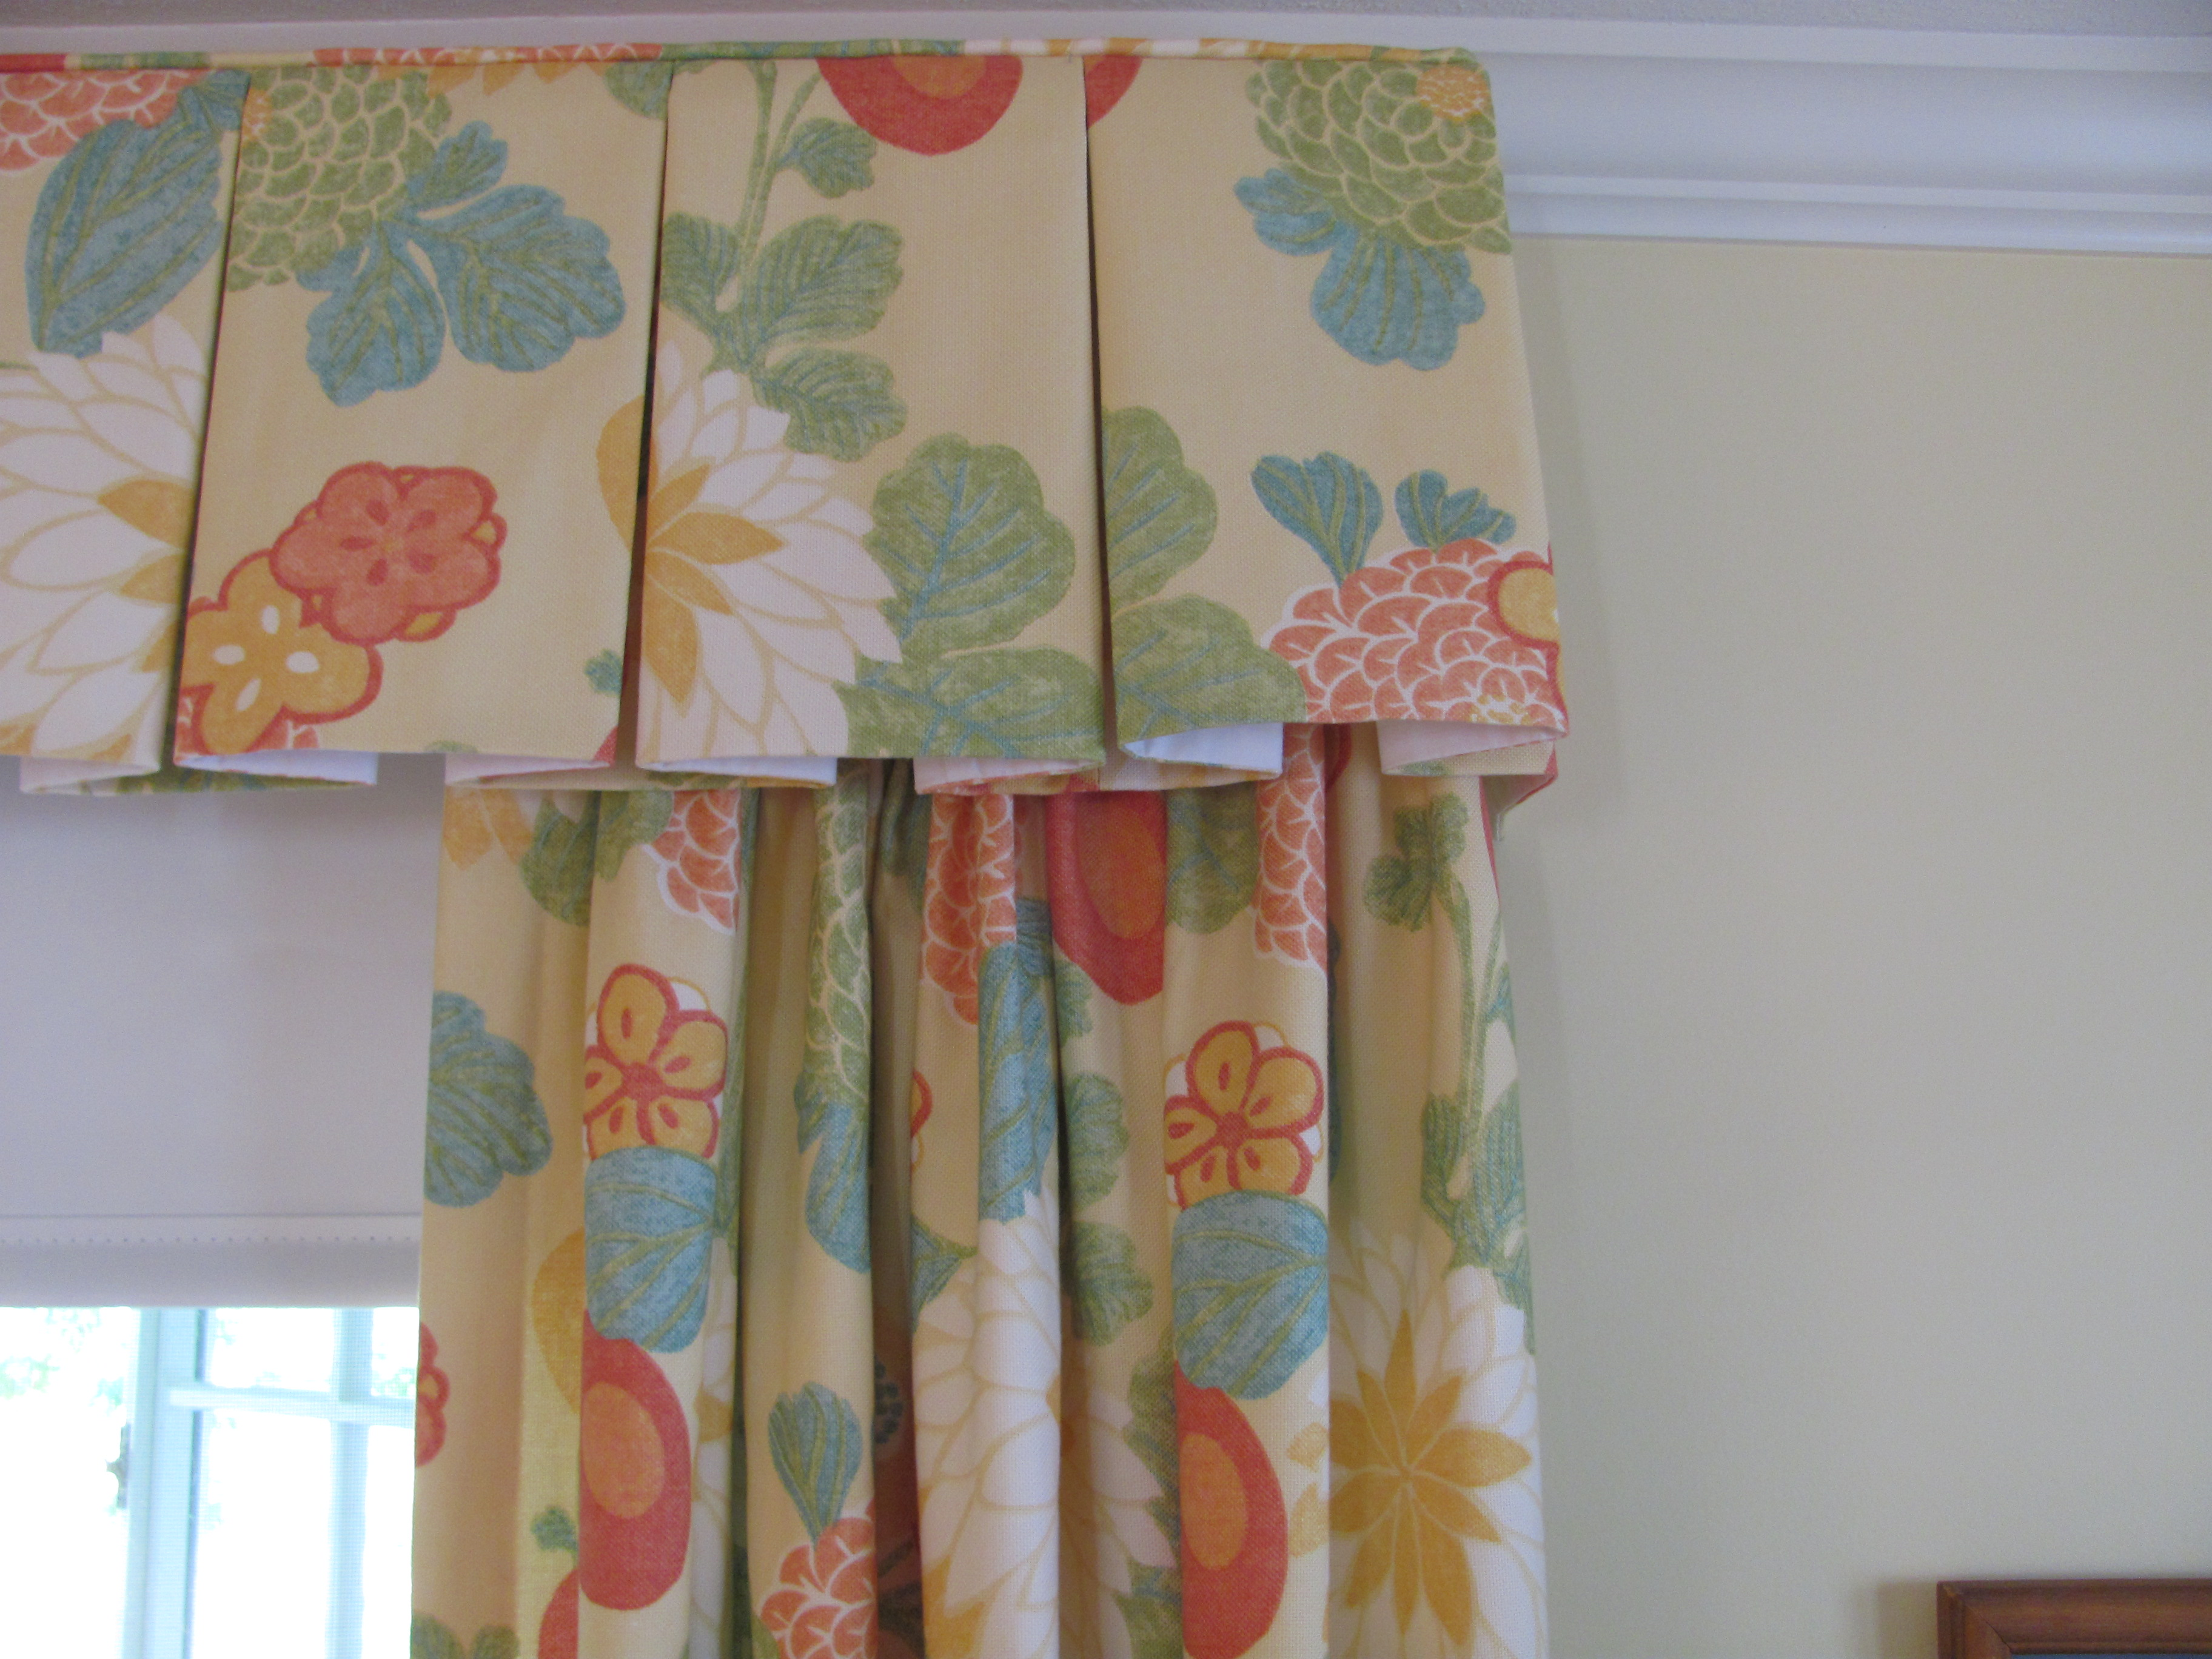 curtains for large dining youll room teal valance living coral colored pleat tailored love valances box cute swags swag windows